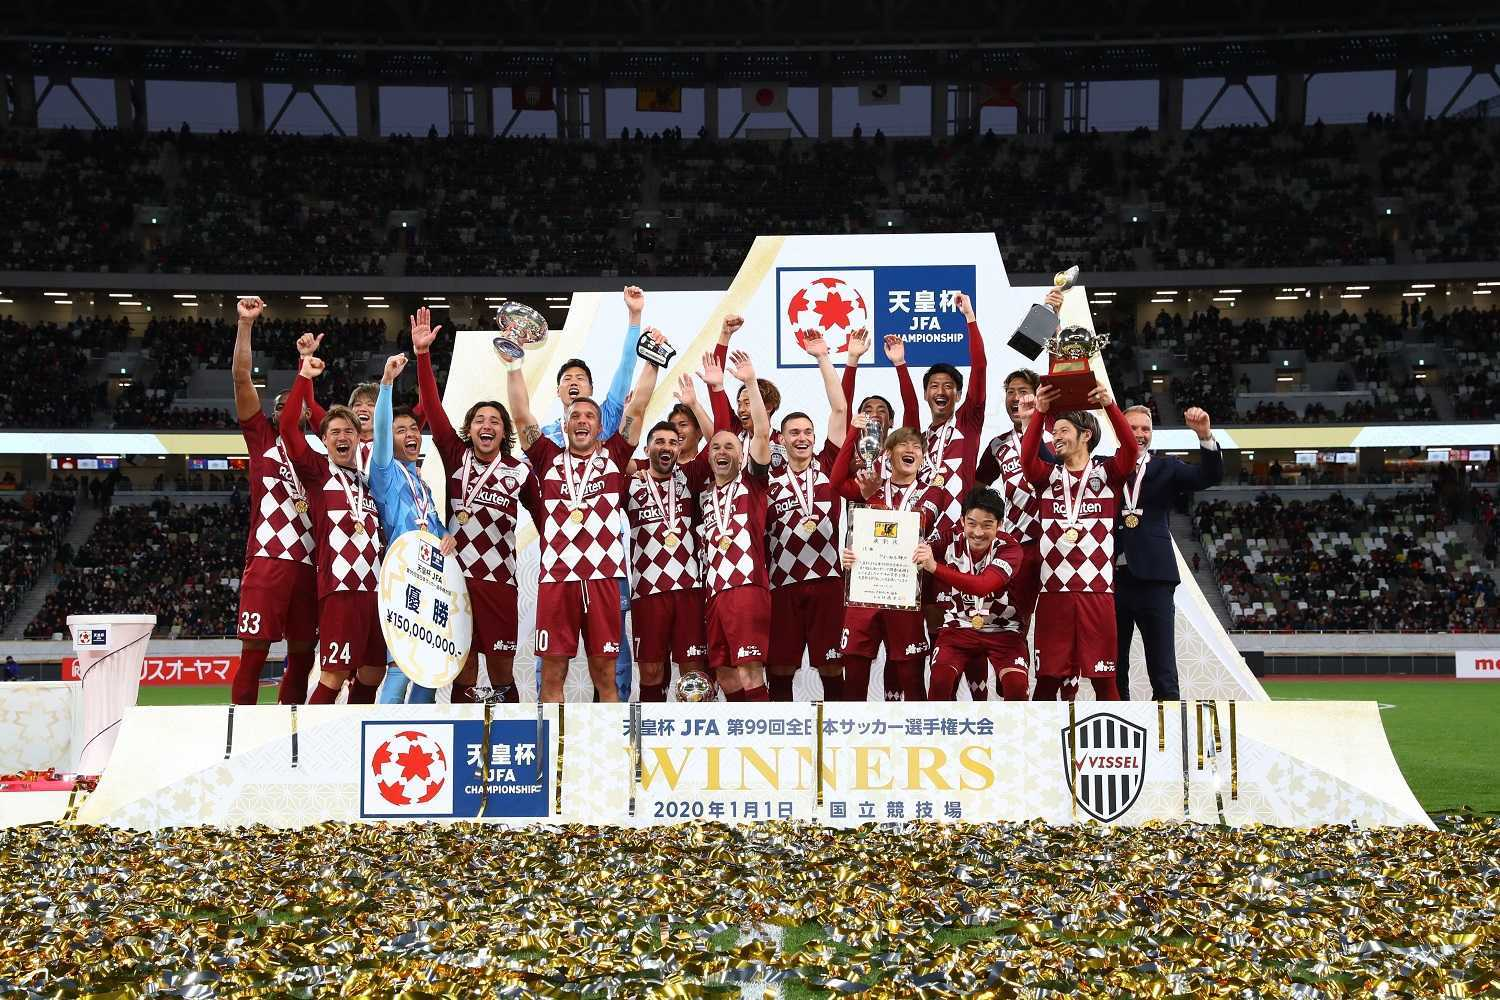 On the first day of the new decade , Vissel Kobe made history when it captured its first-ever trophy — The Emperor's Cup.